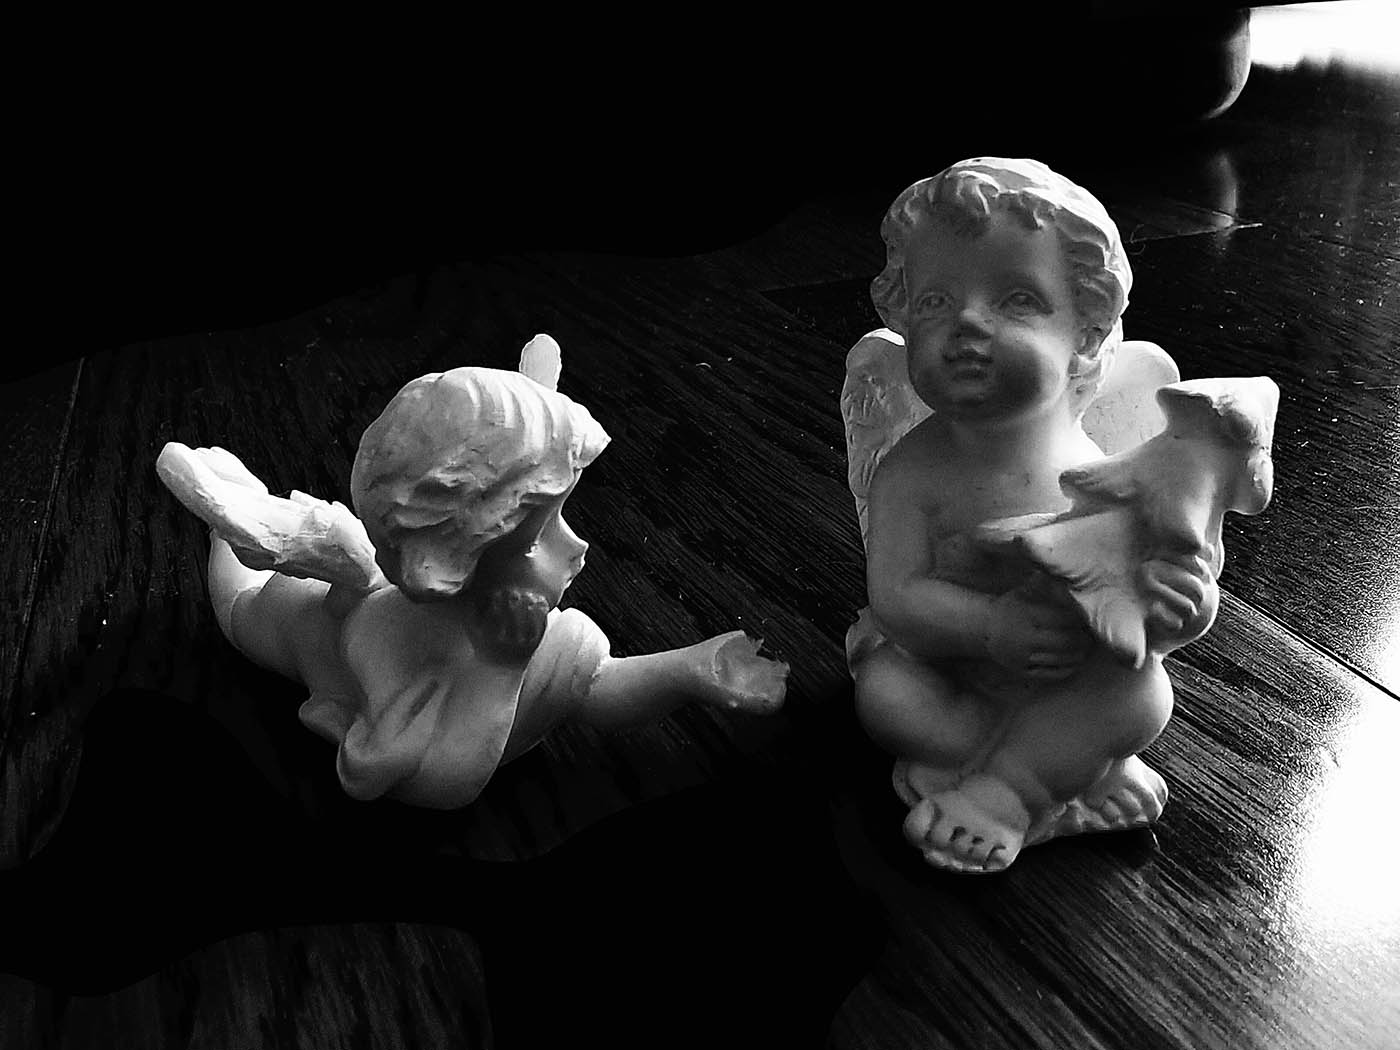 Black and white photo of two classical cherub sculptures.